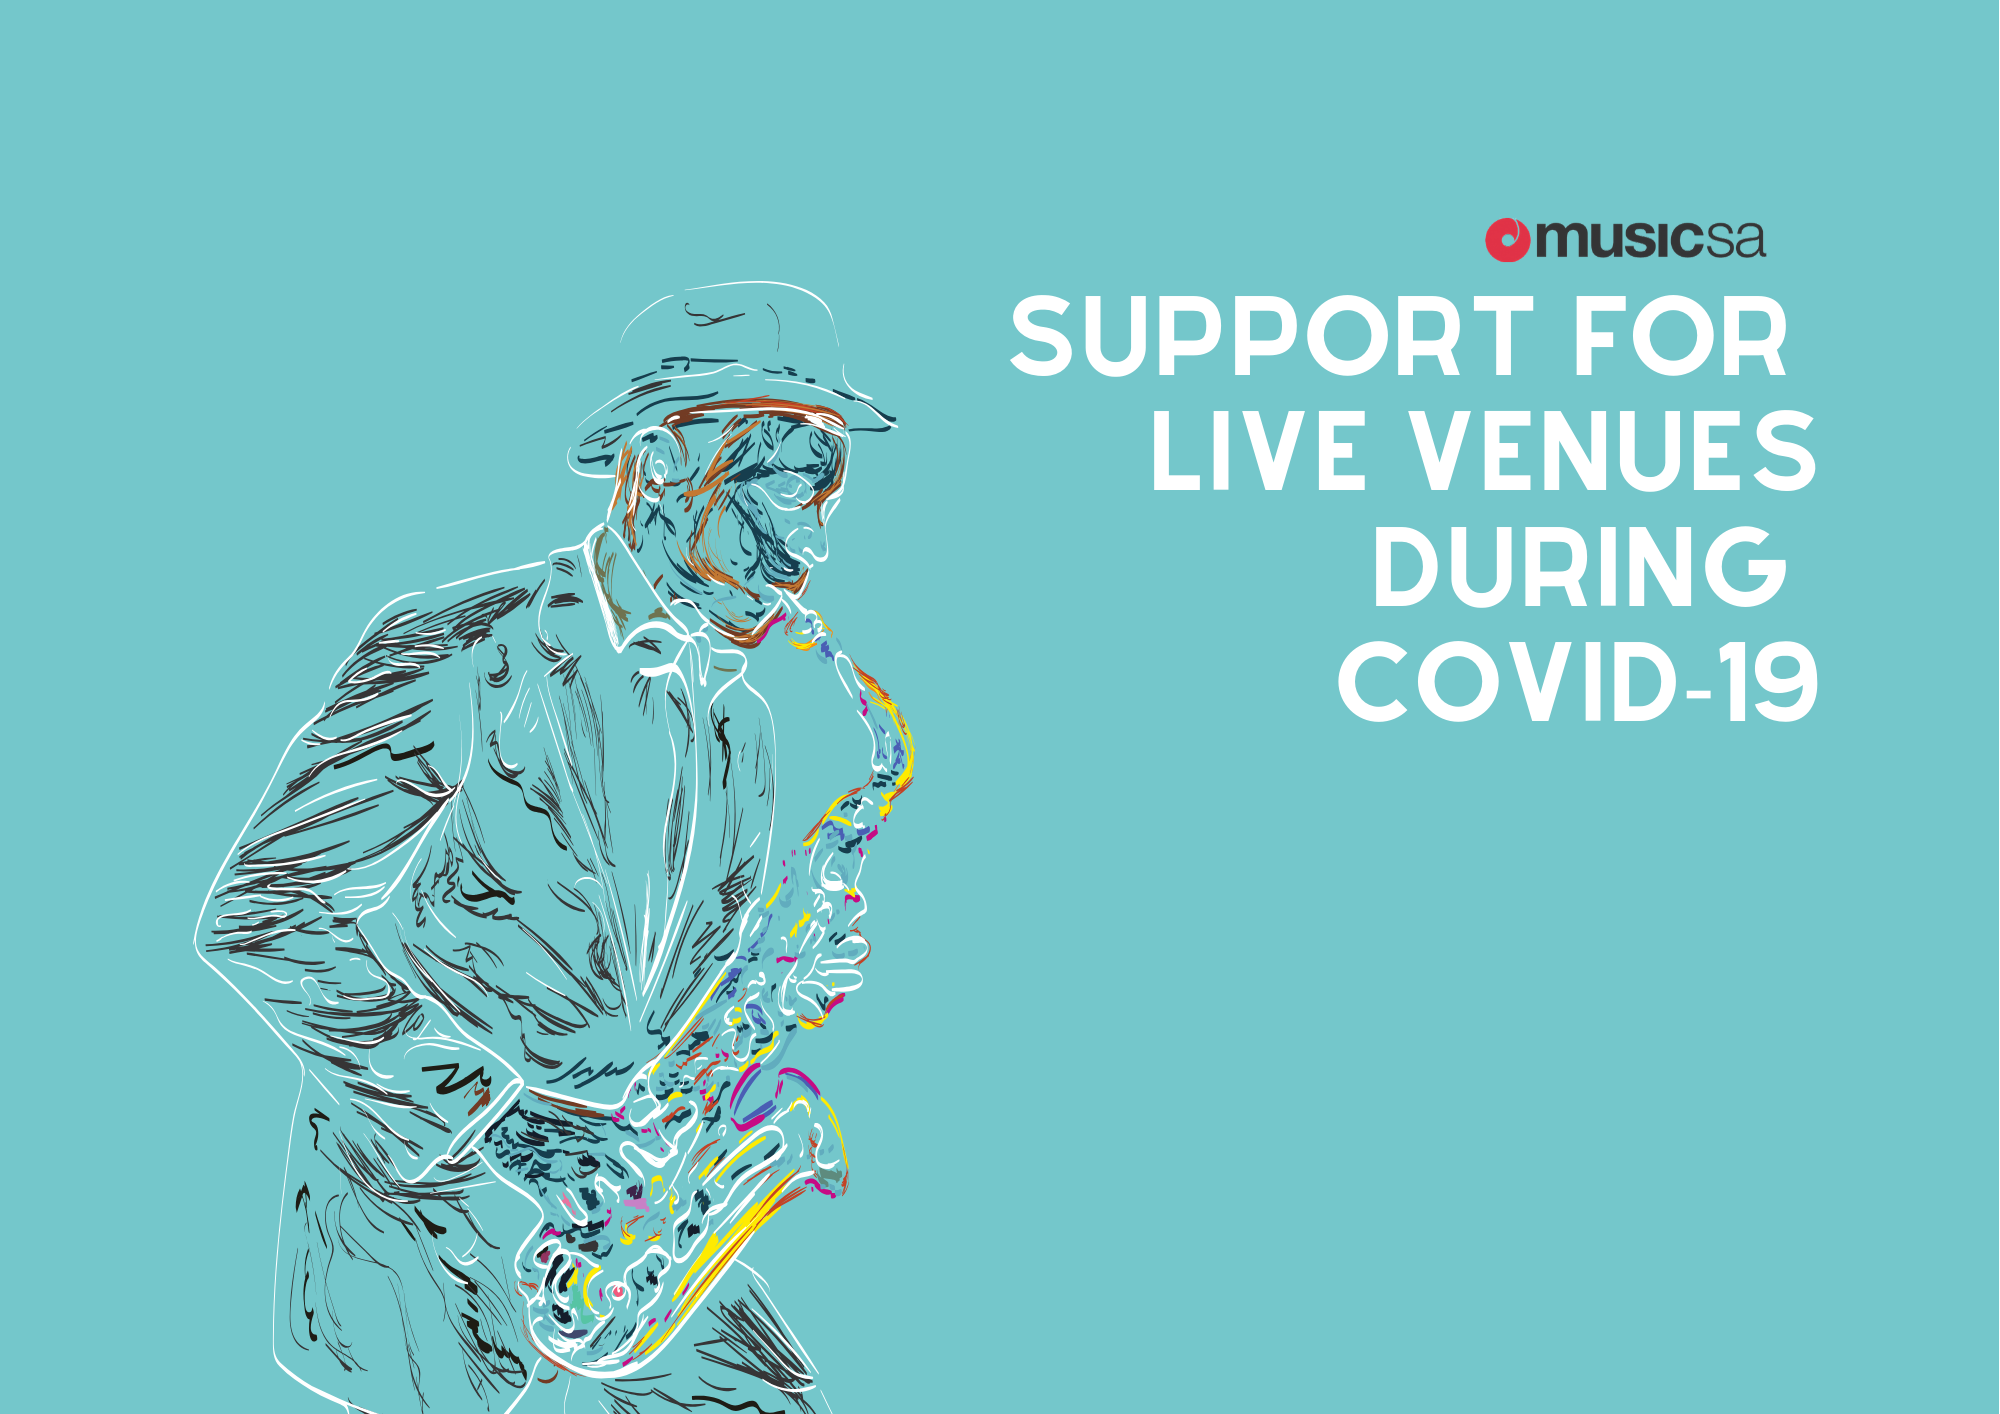 SUPPORT FOR LIVE MUSIC VENUES – COVID-19